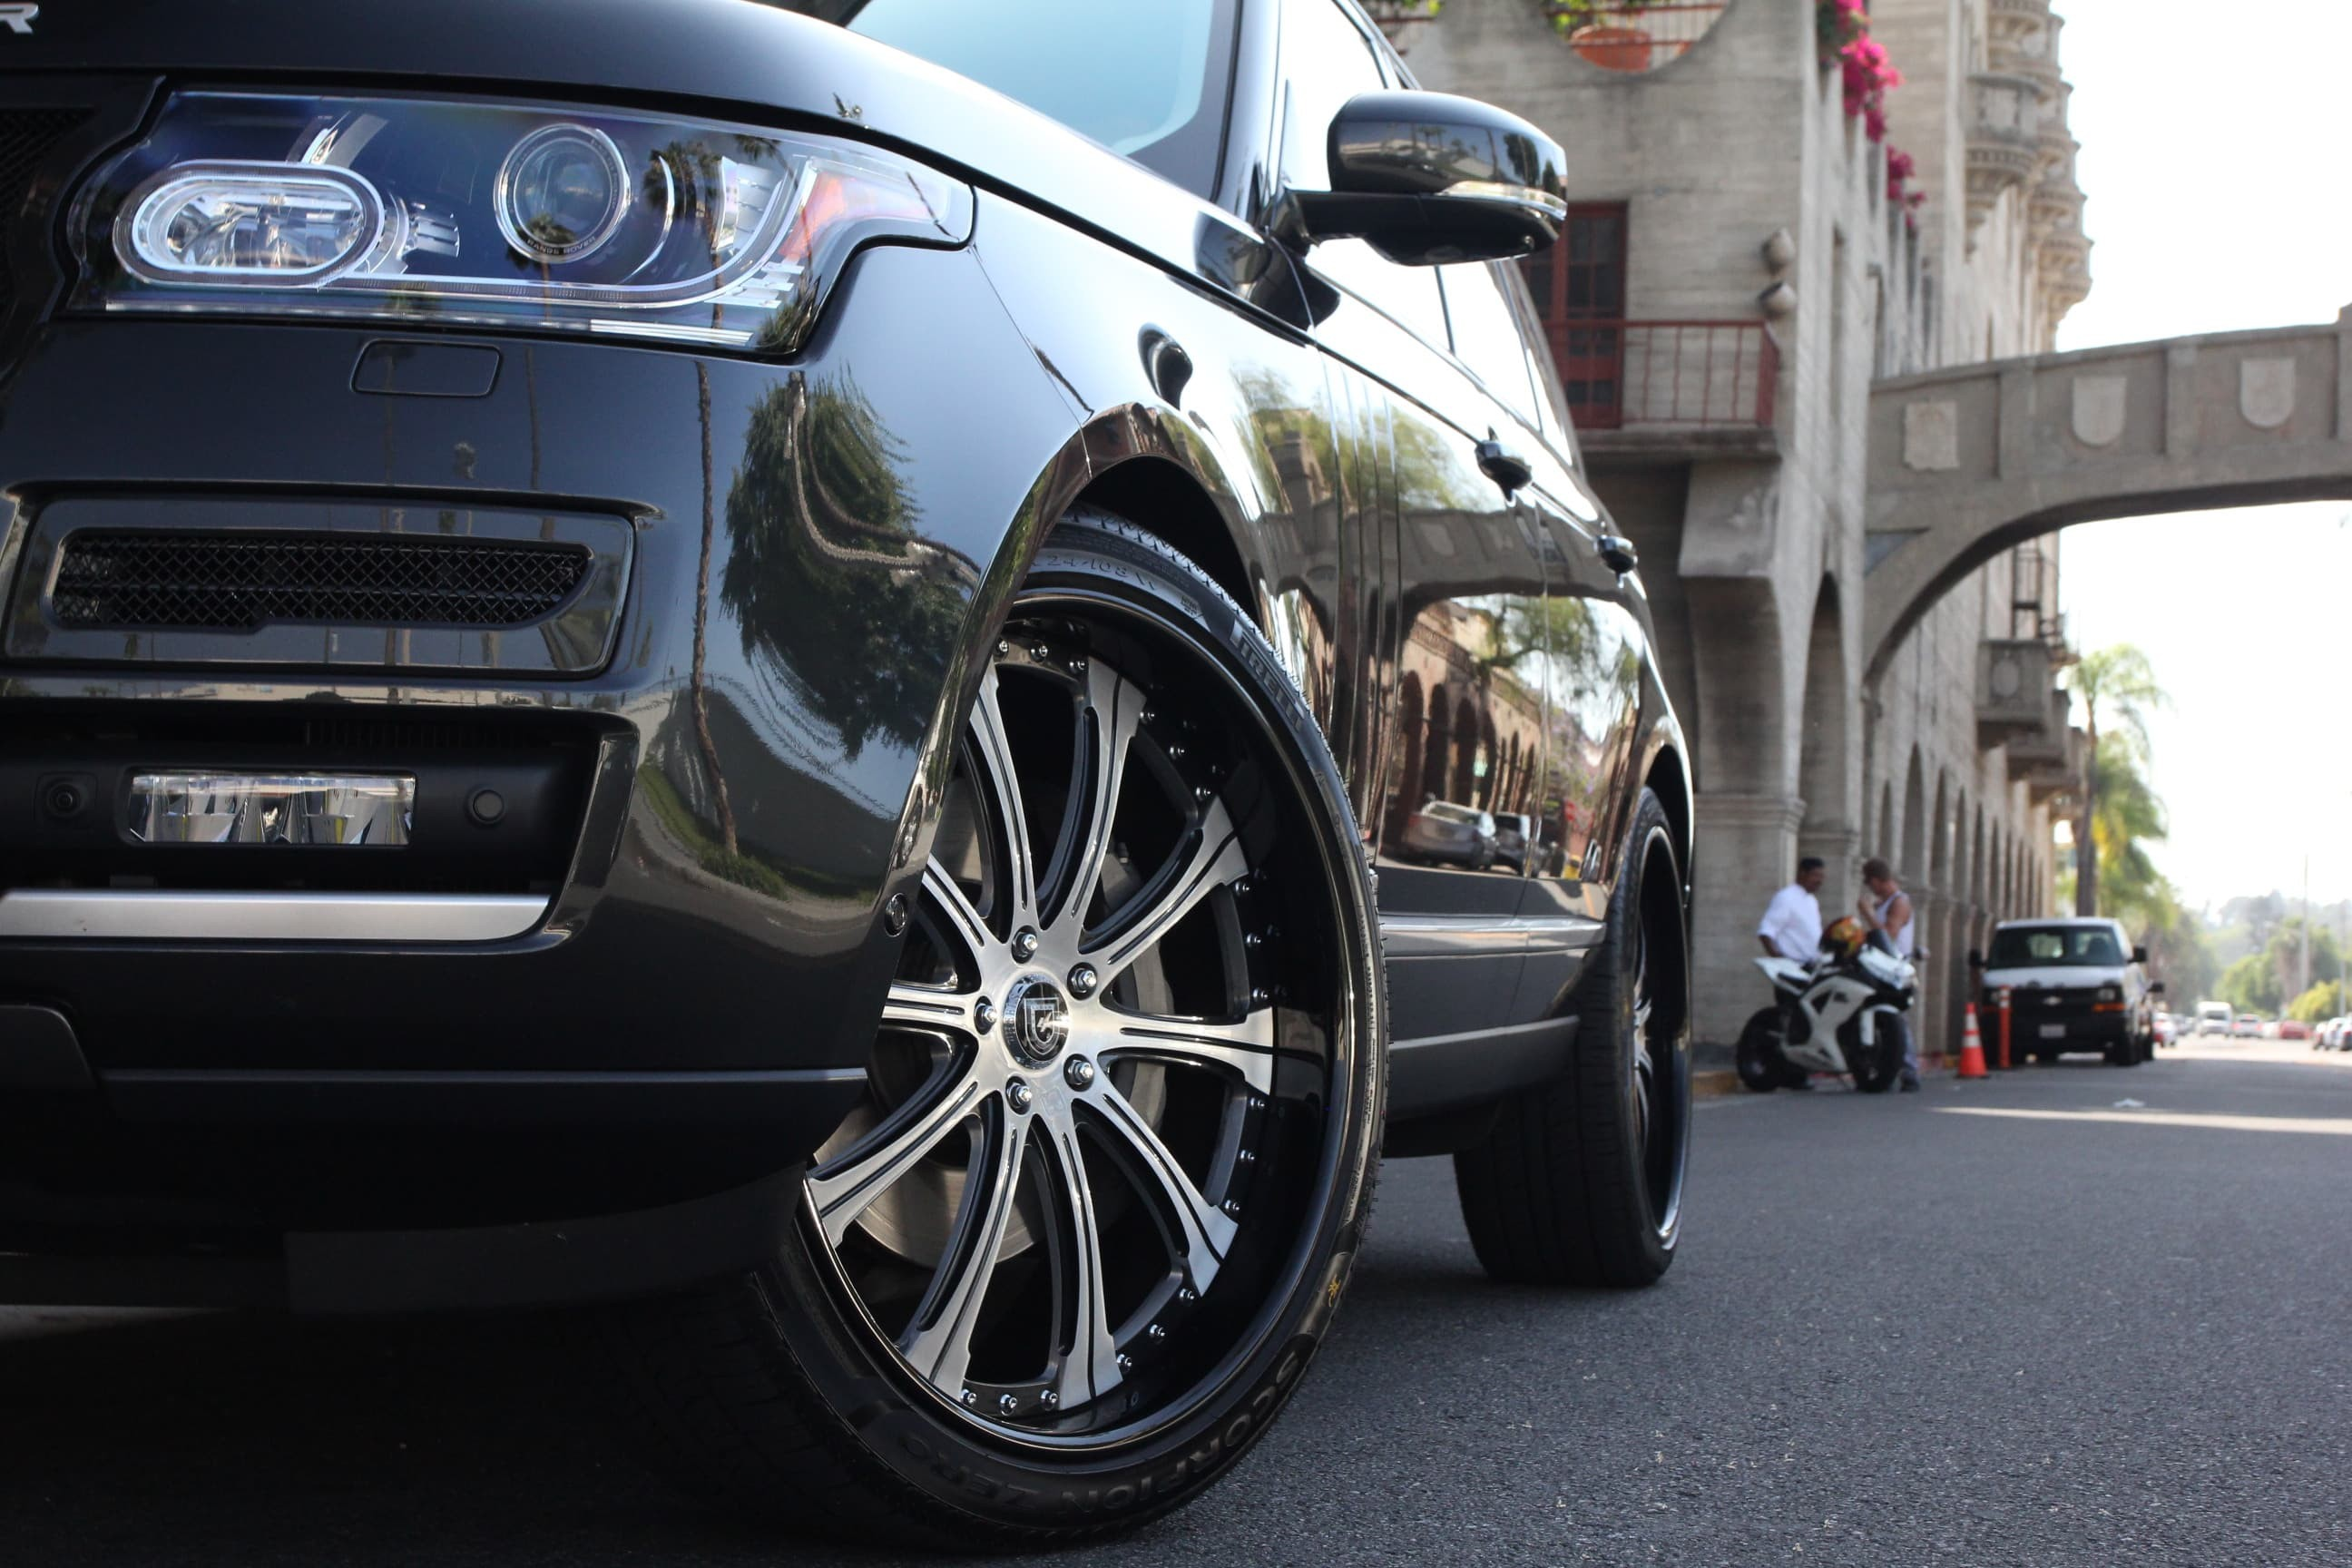 The 2013 Range Rover with machine face and black LR-707 24